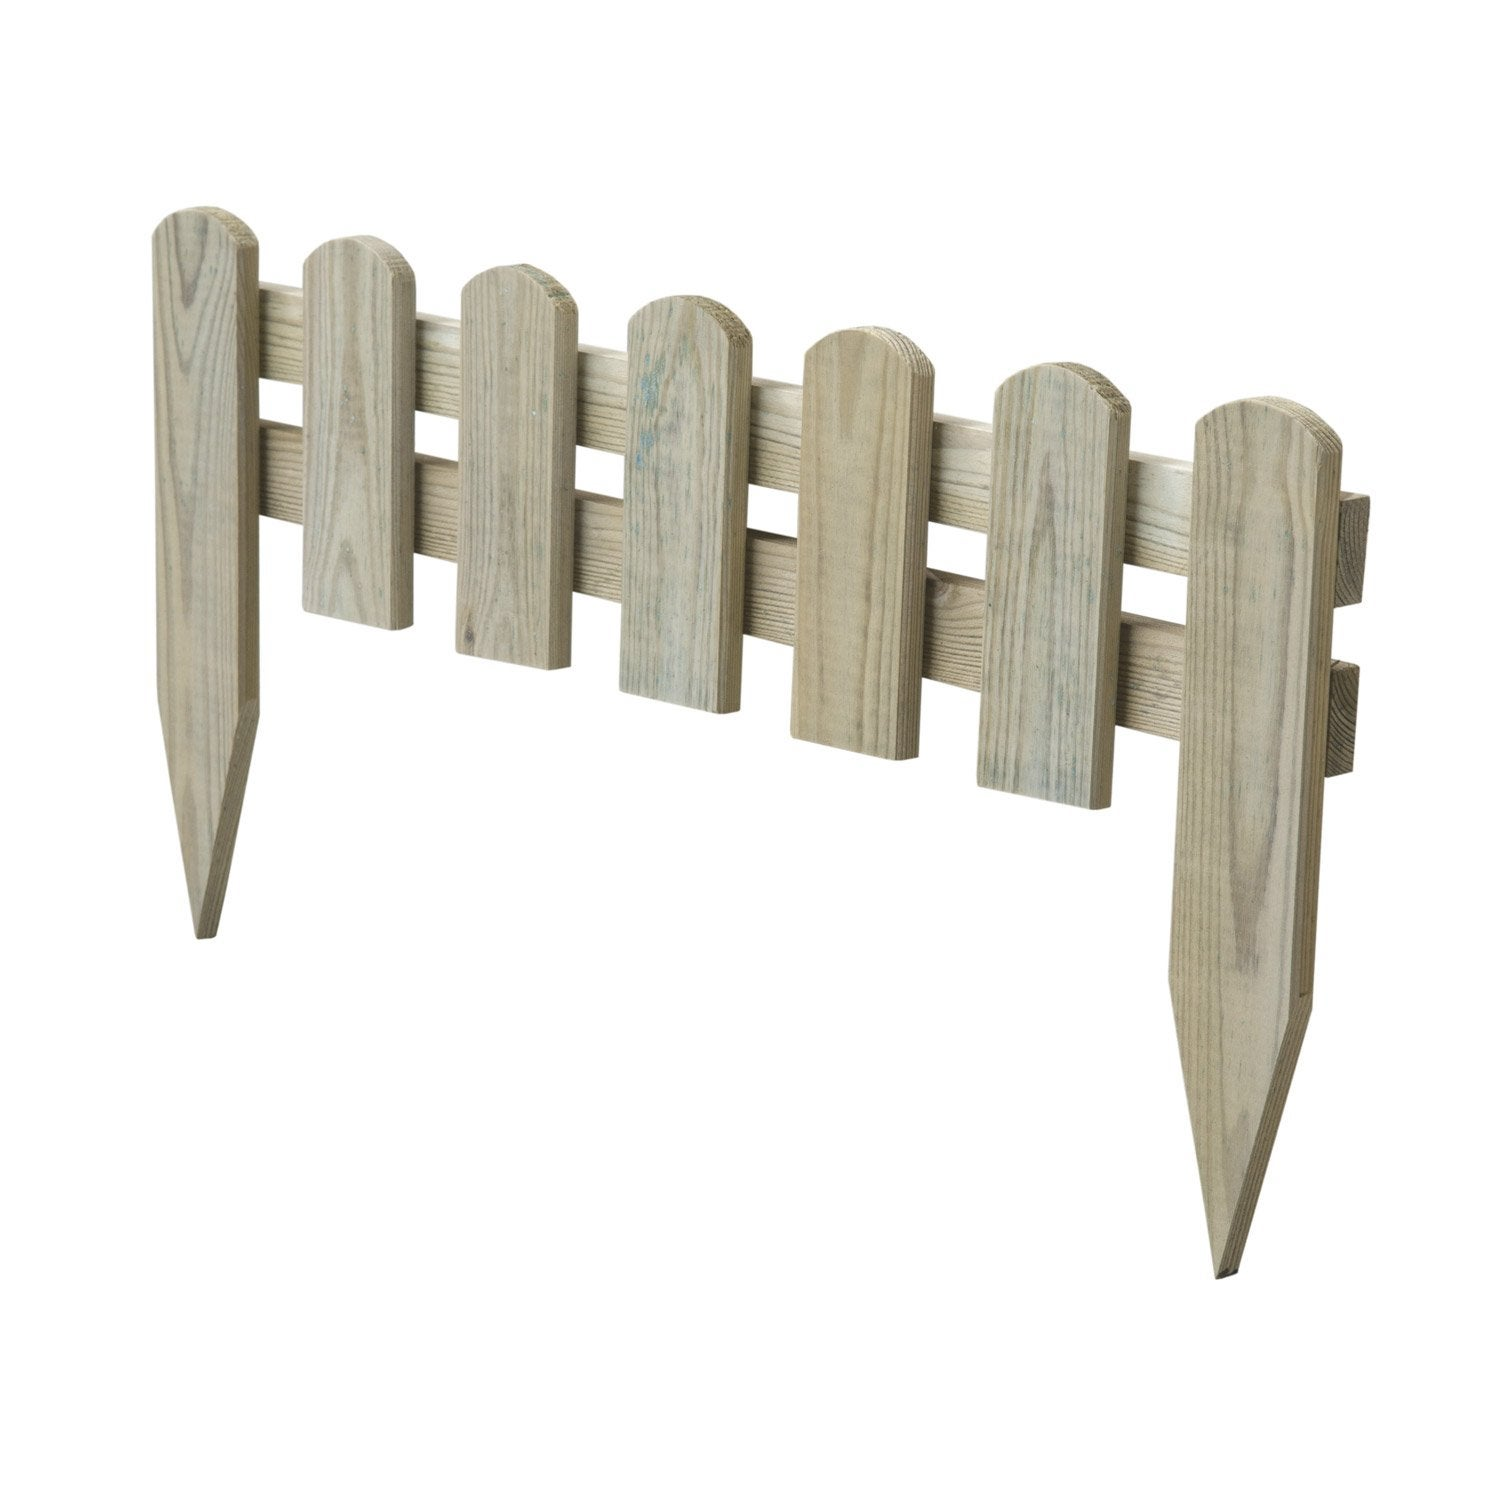 Bordure planter stackette bois naturel x cm - Bordures de jardin leroy merlin colombes ...